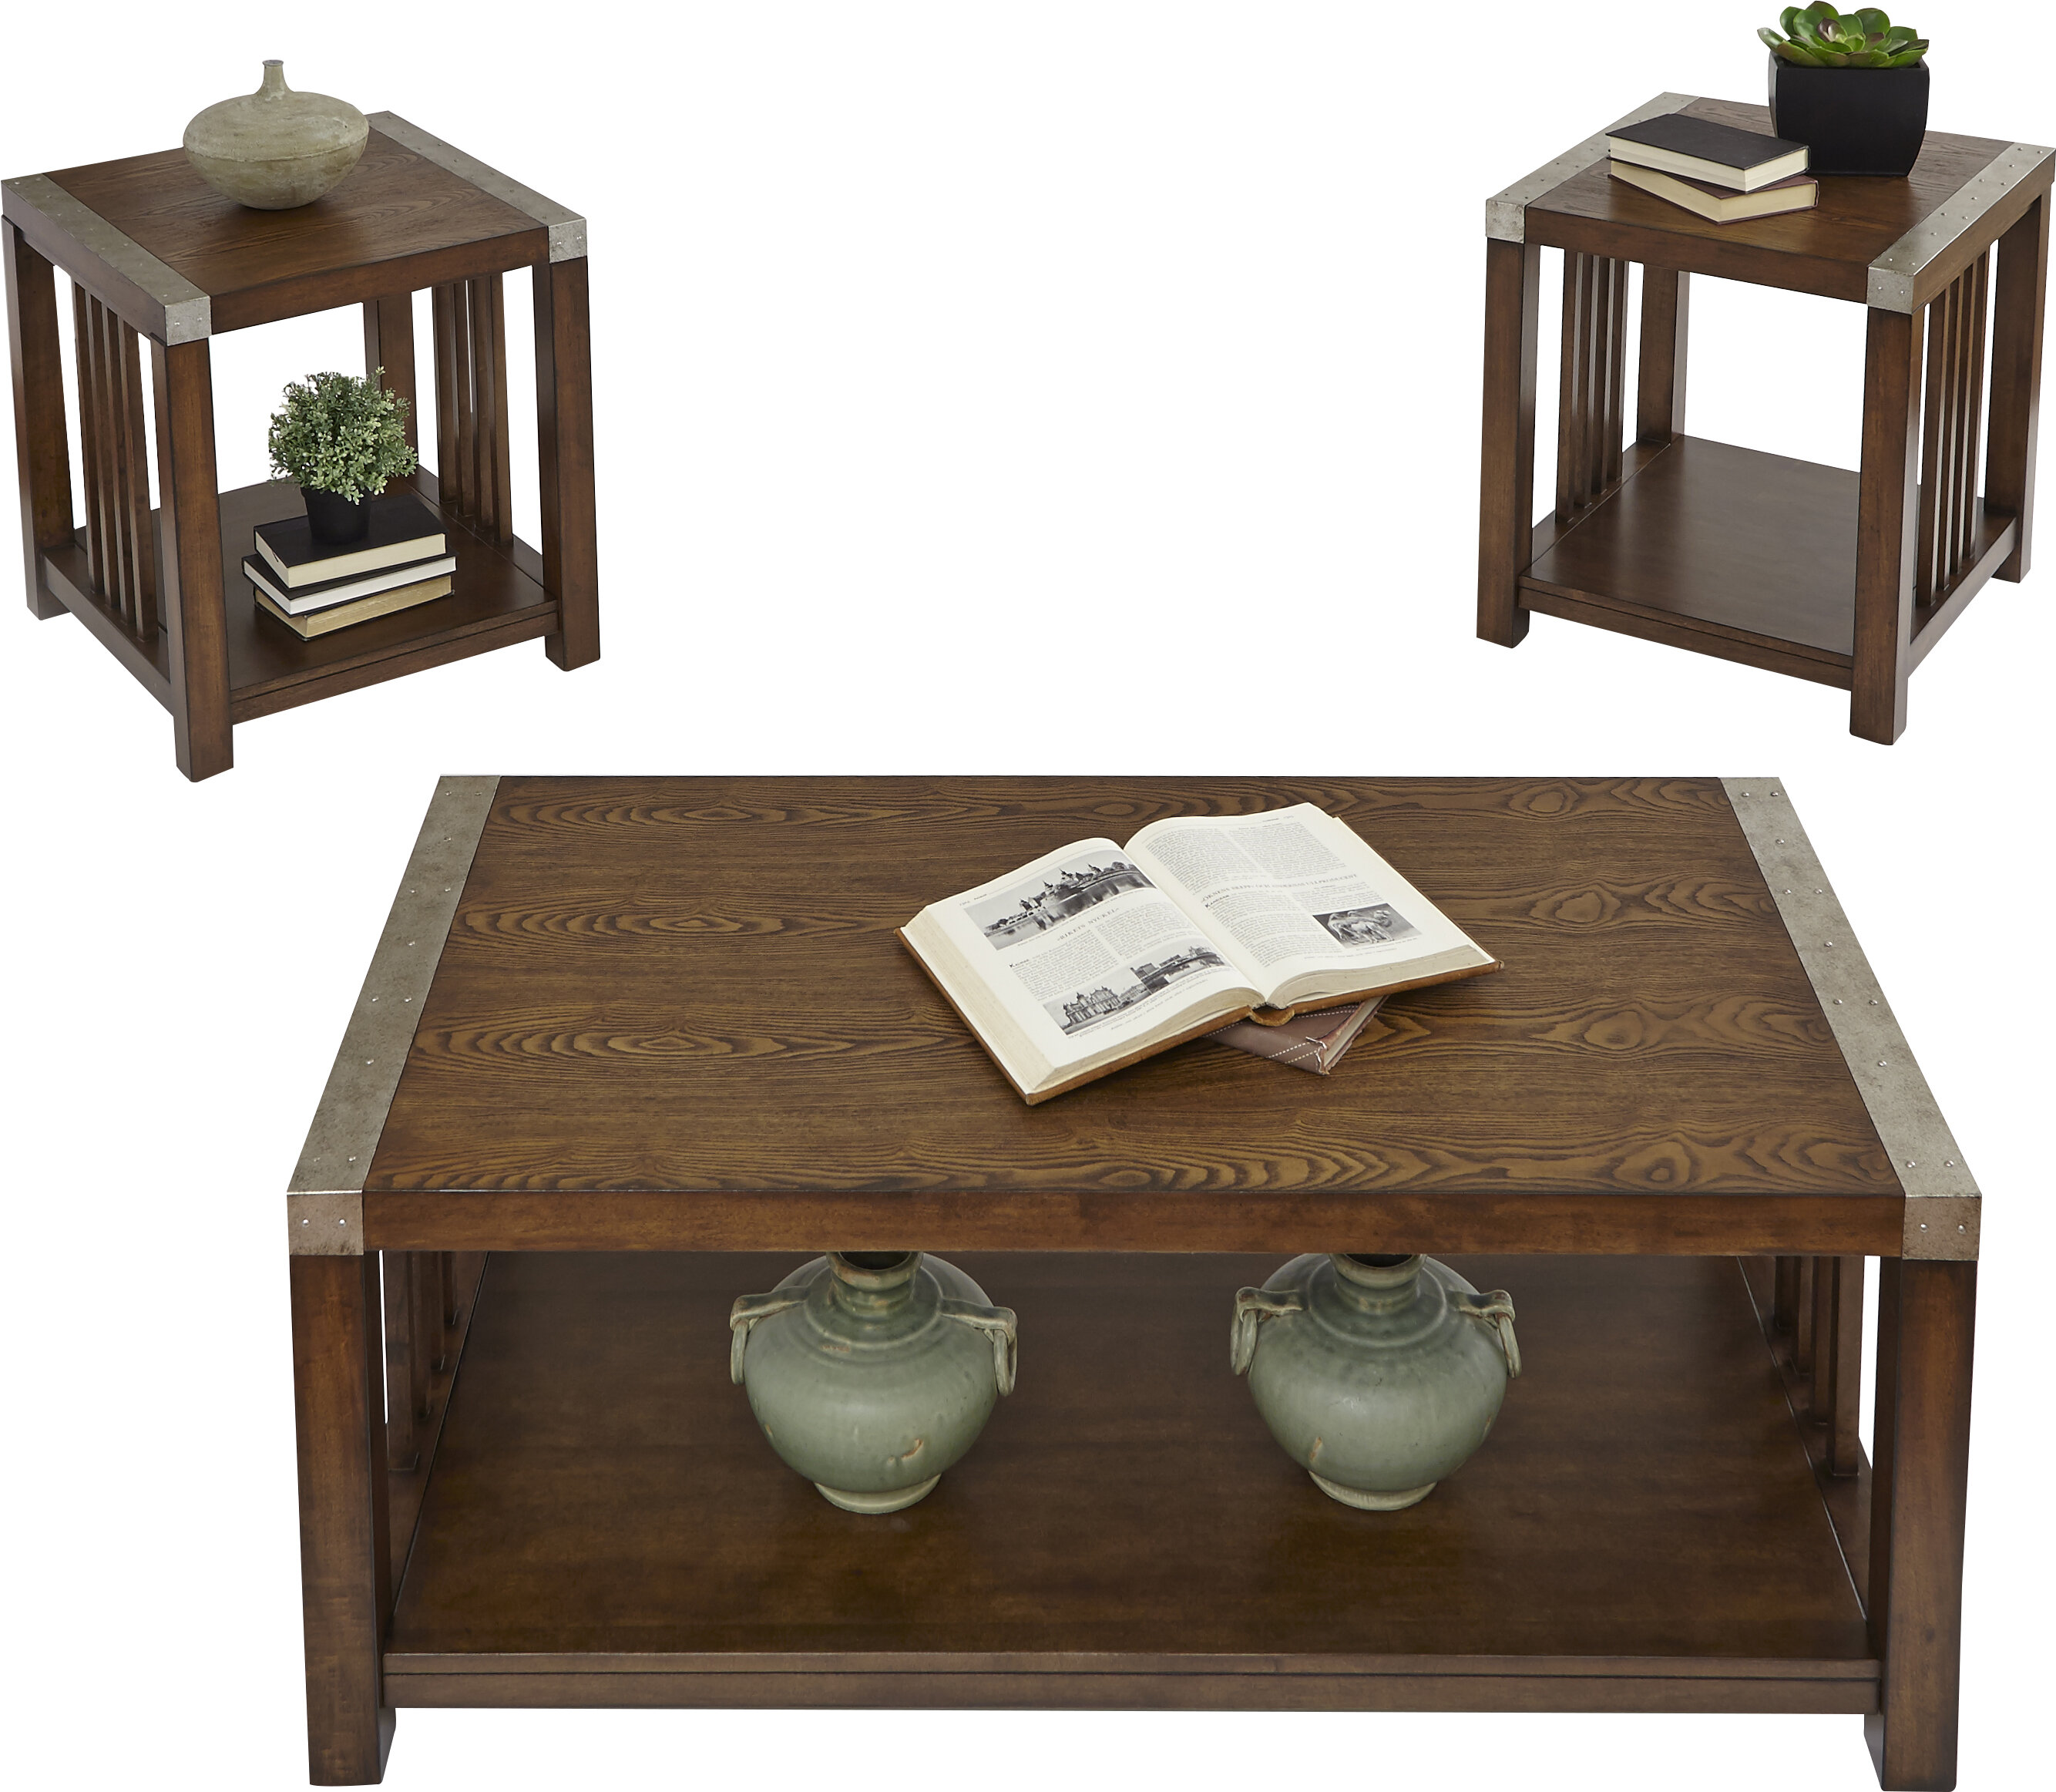 sc 1 st  Wayfair & Loon Peak Creede 3 Piece Coffee Table Set u0026 Reviews | Wayfair